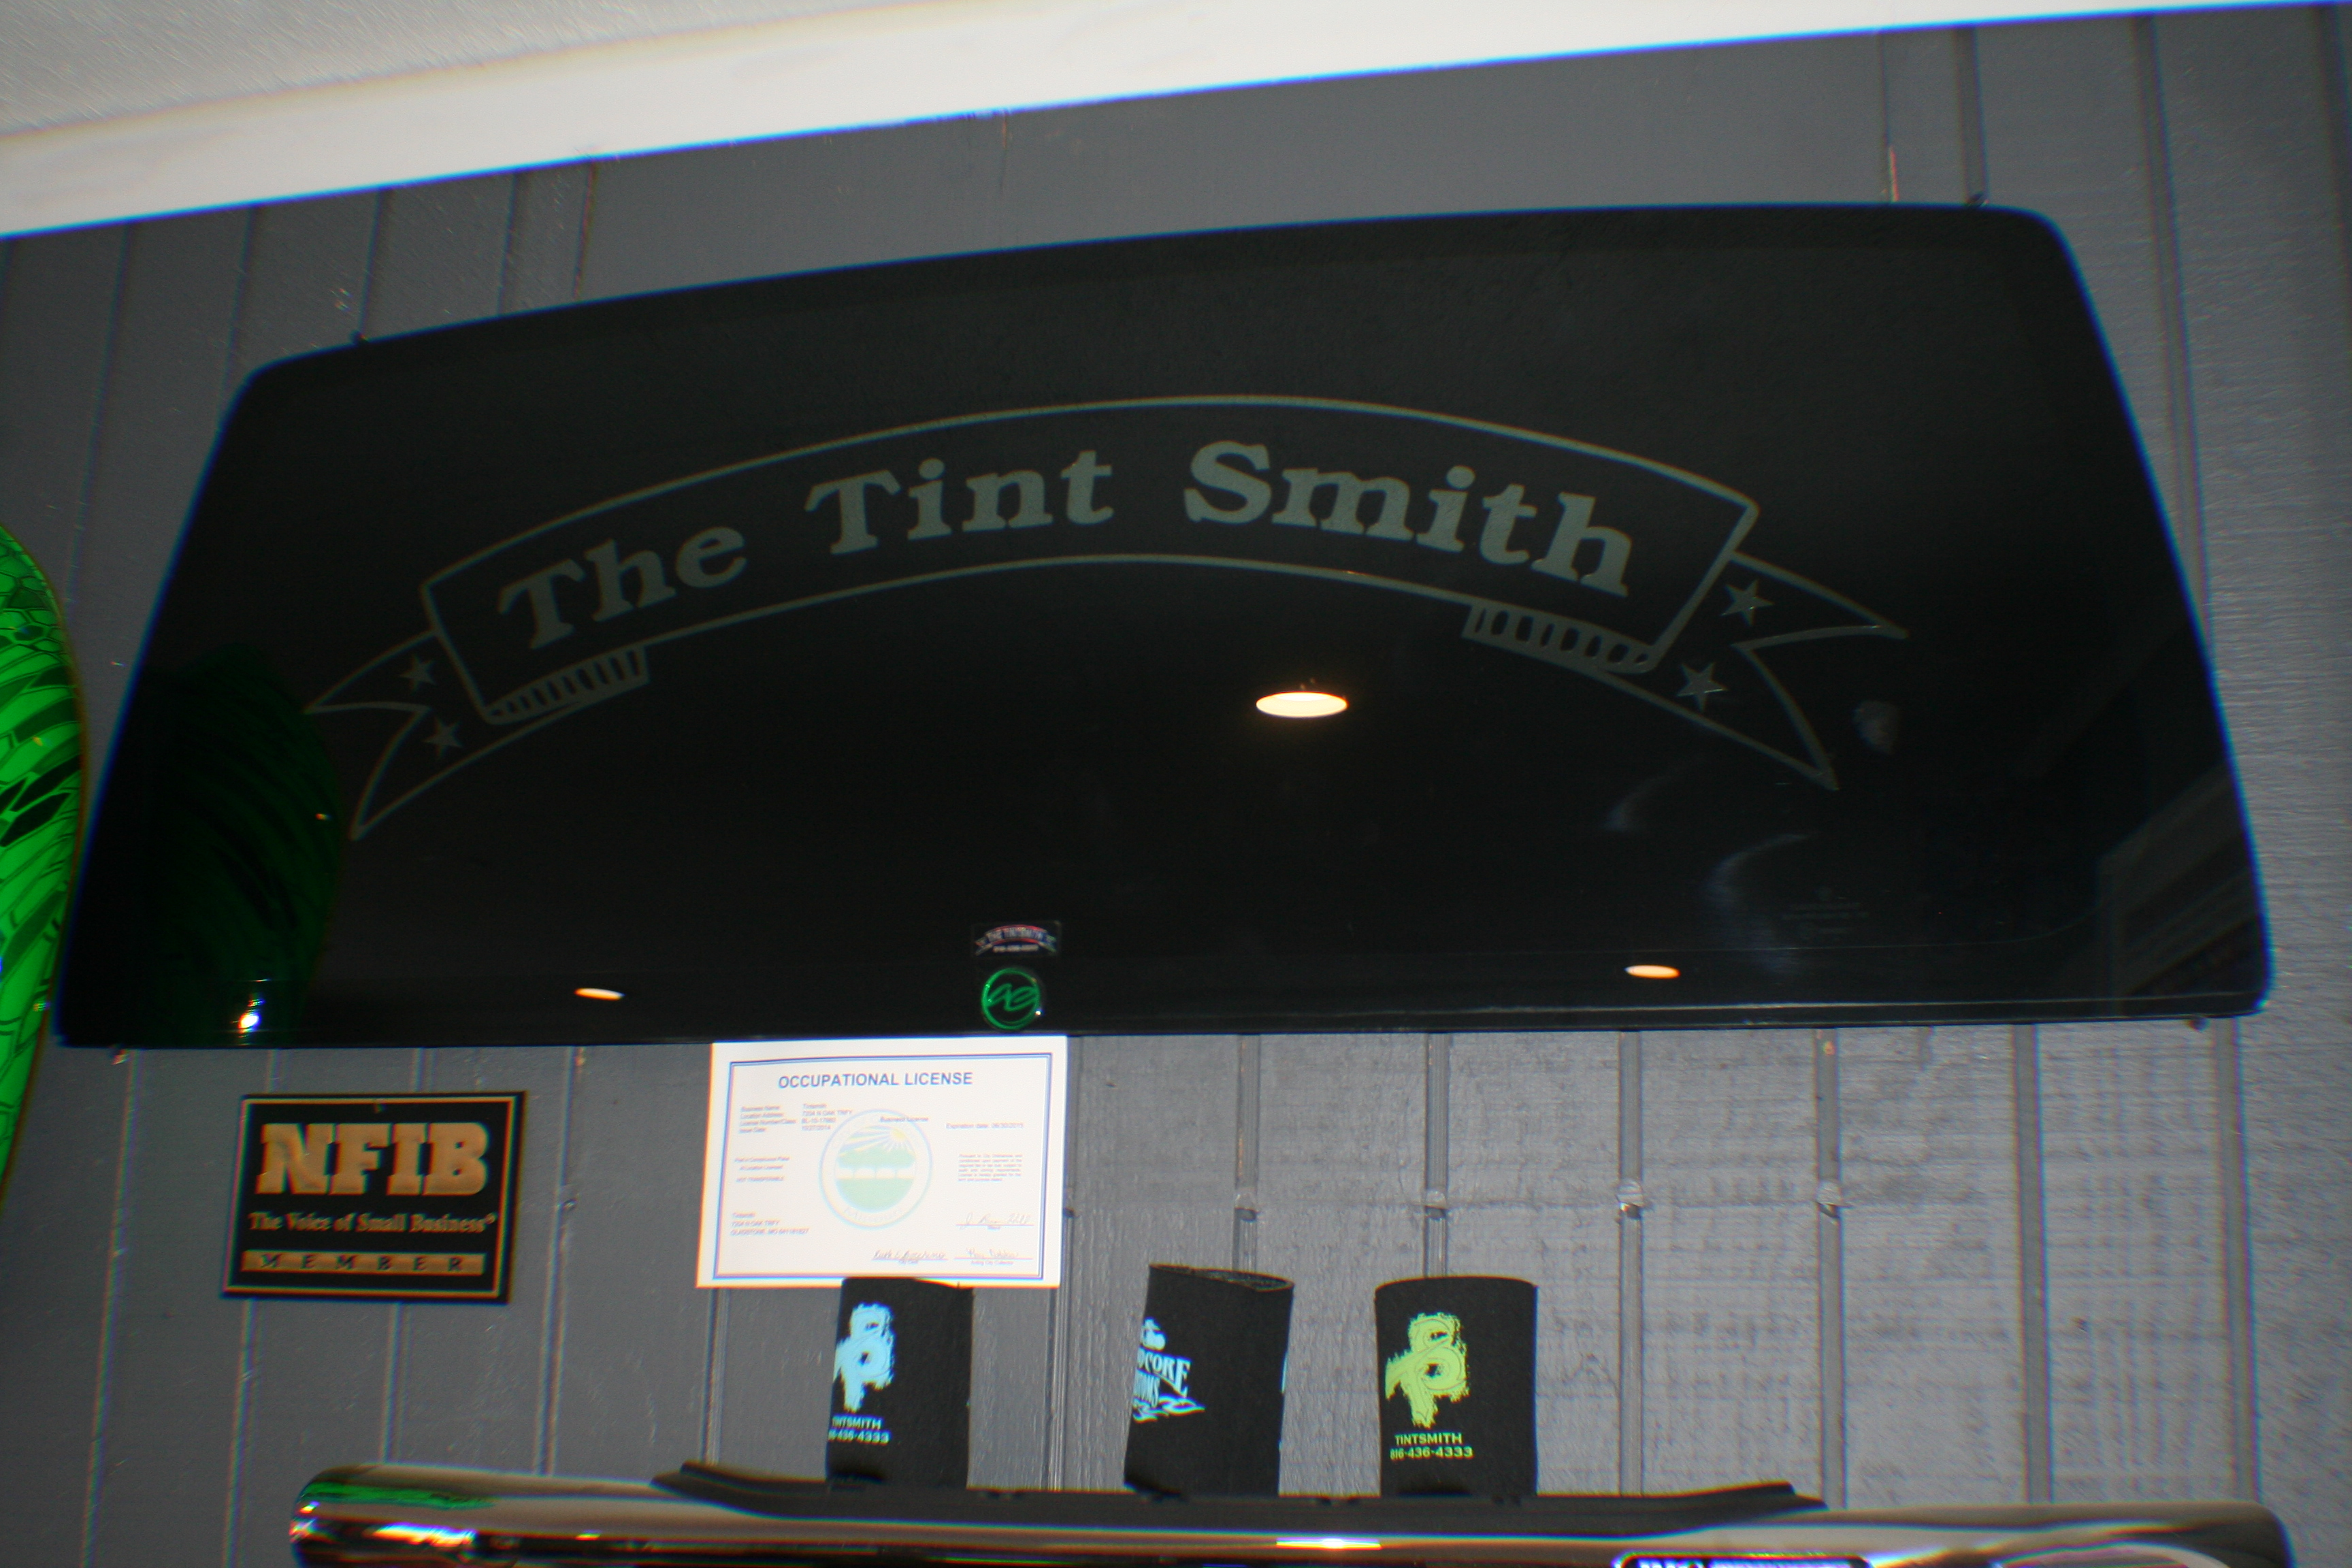 How Is The Film Supplied Tintsmith